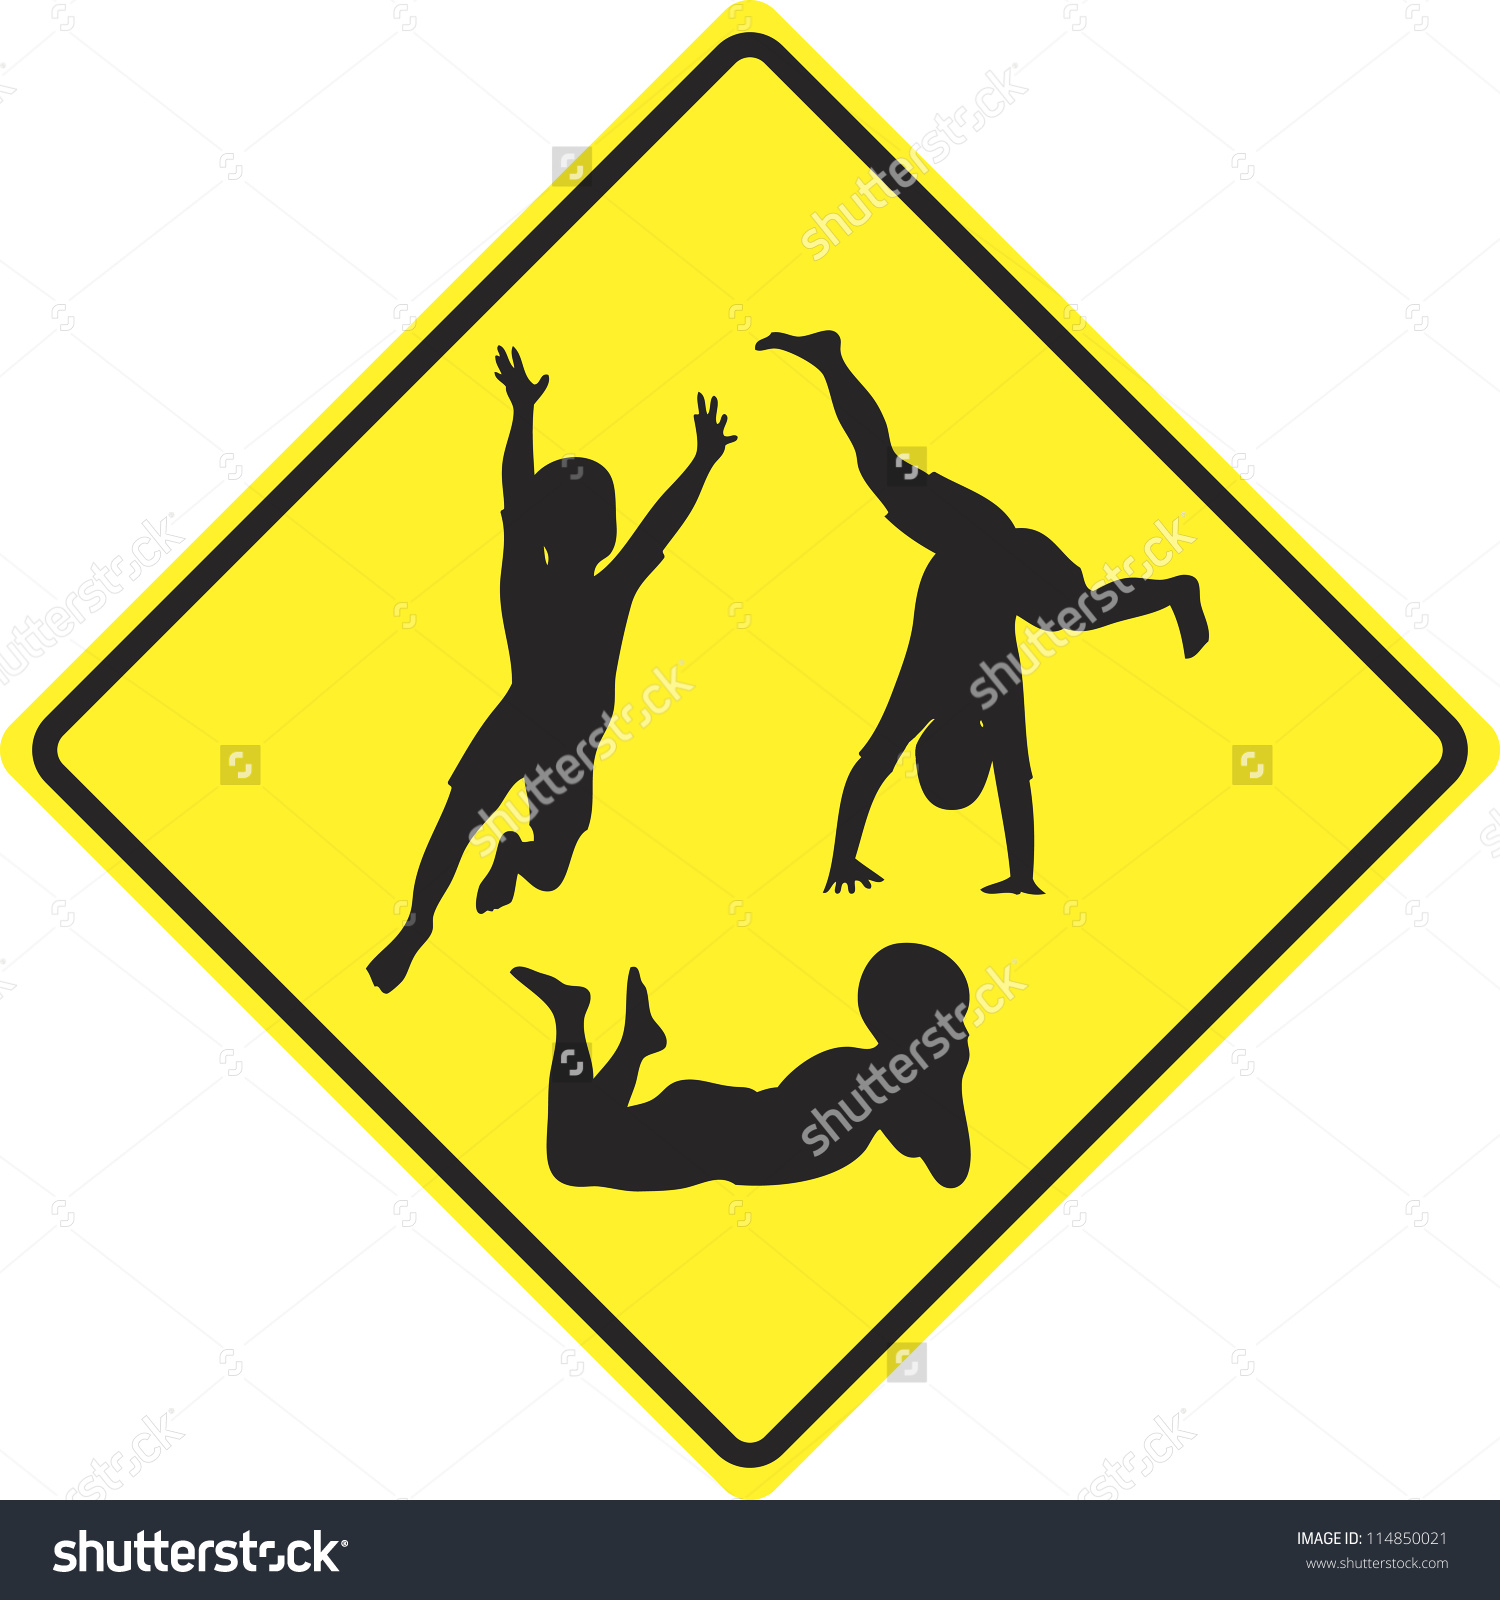 Caution Kids Playing Traffic Sign Slow Stock Illustration.